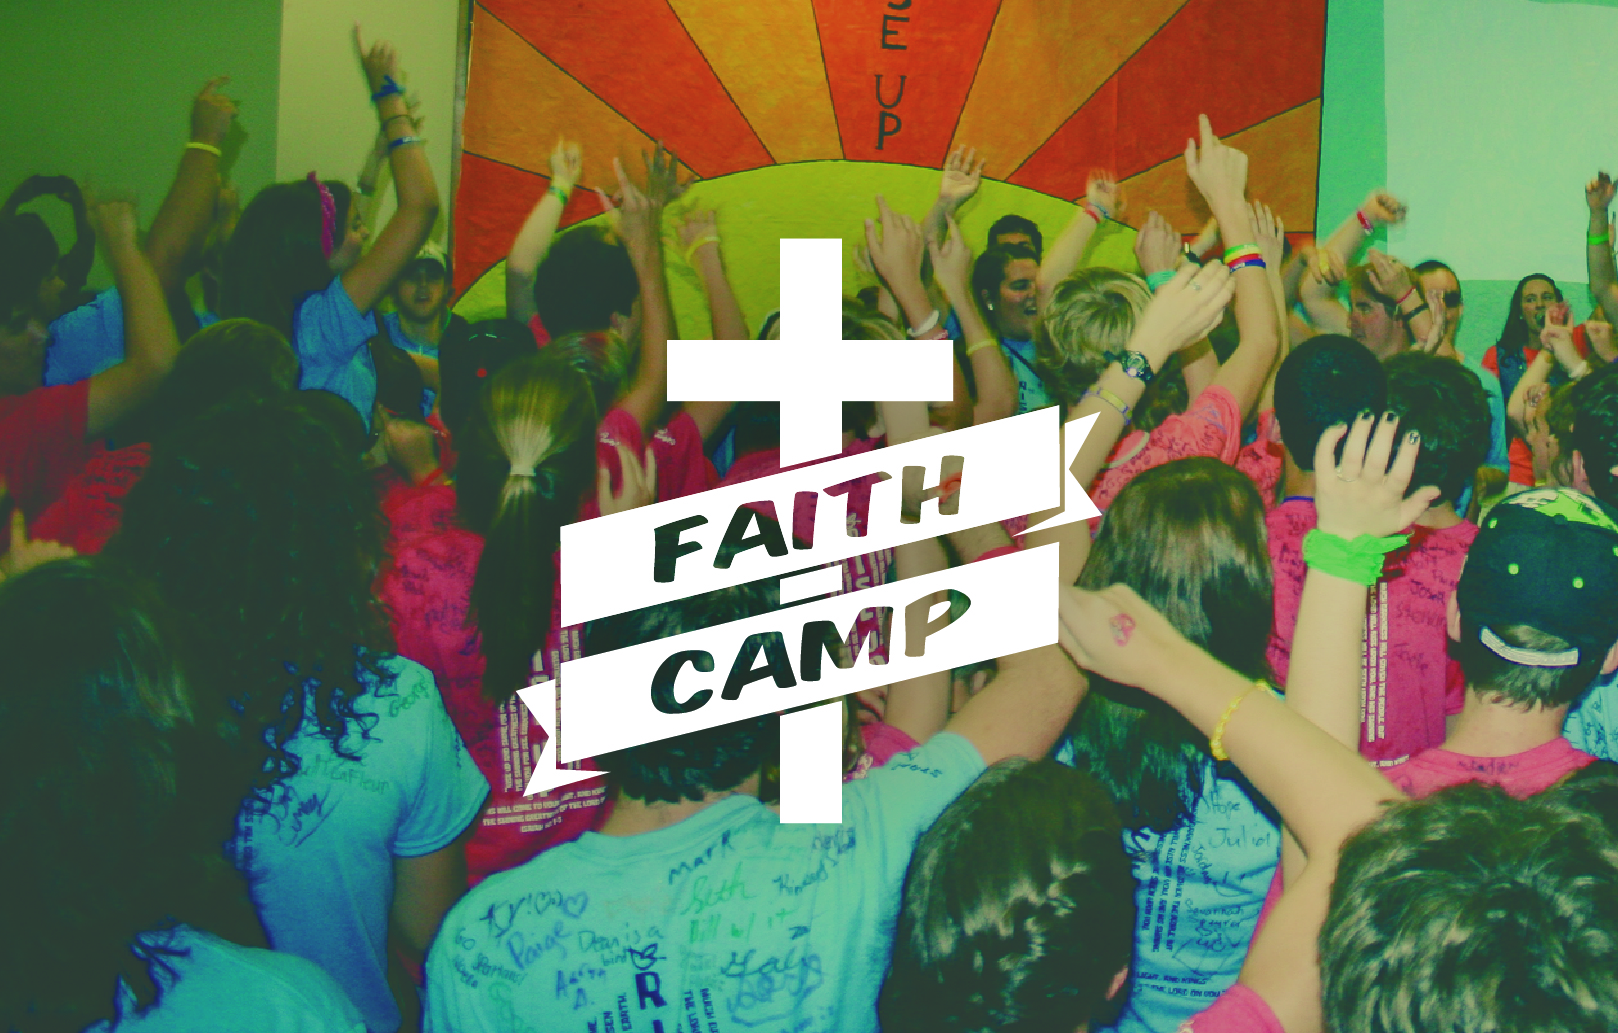 Faith Camp, catholic summer camp, youth